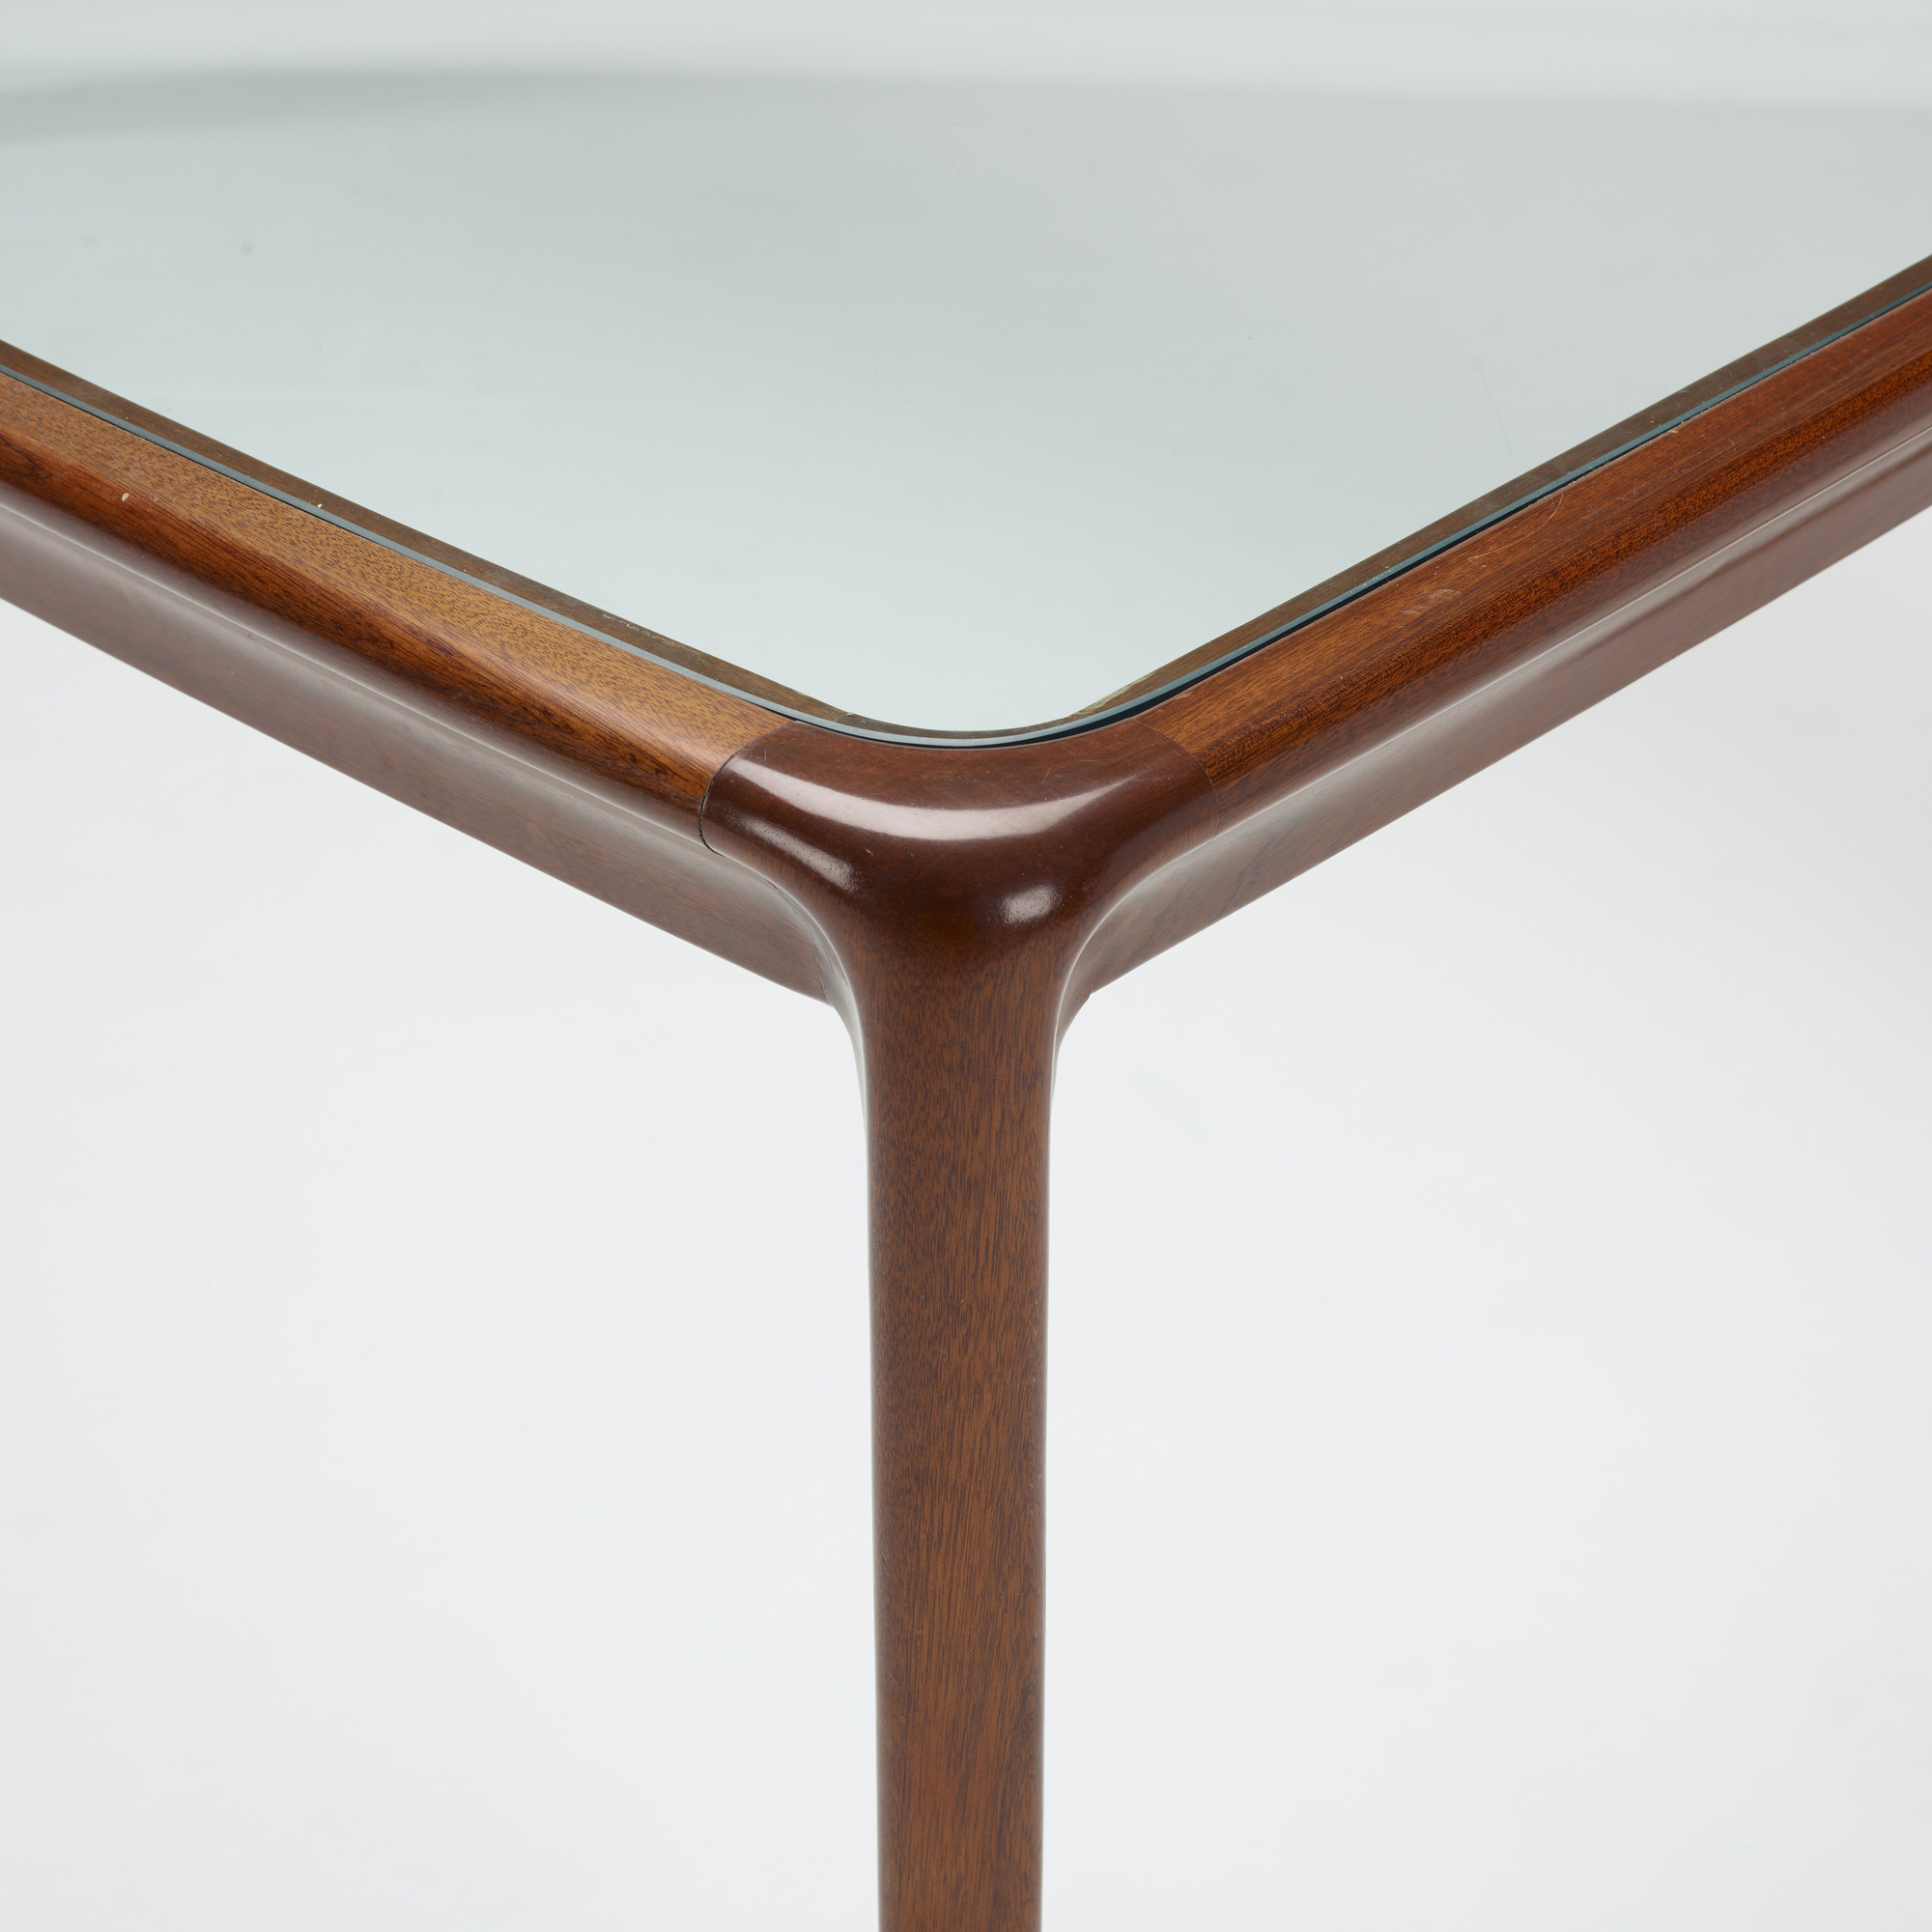 517: Angelo Mangiarotti / Denos dining table (3 of 3)